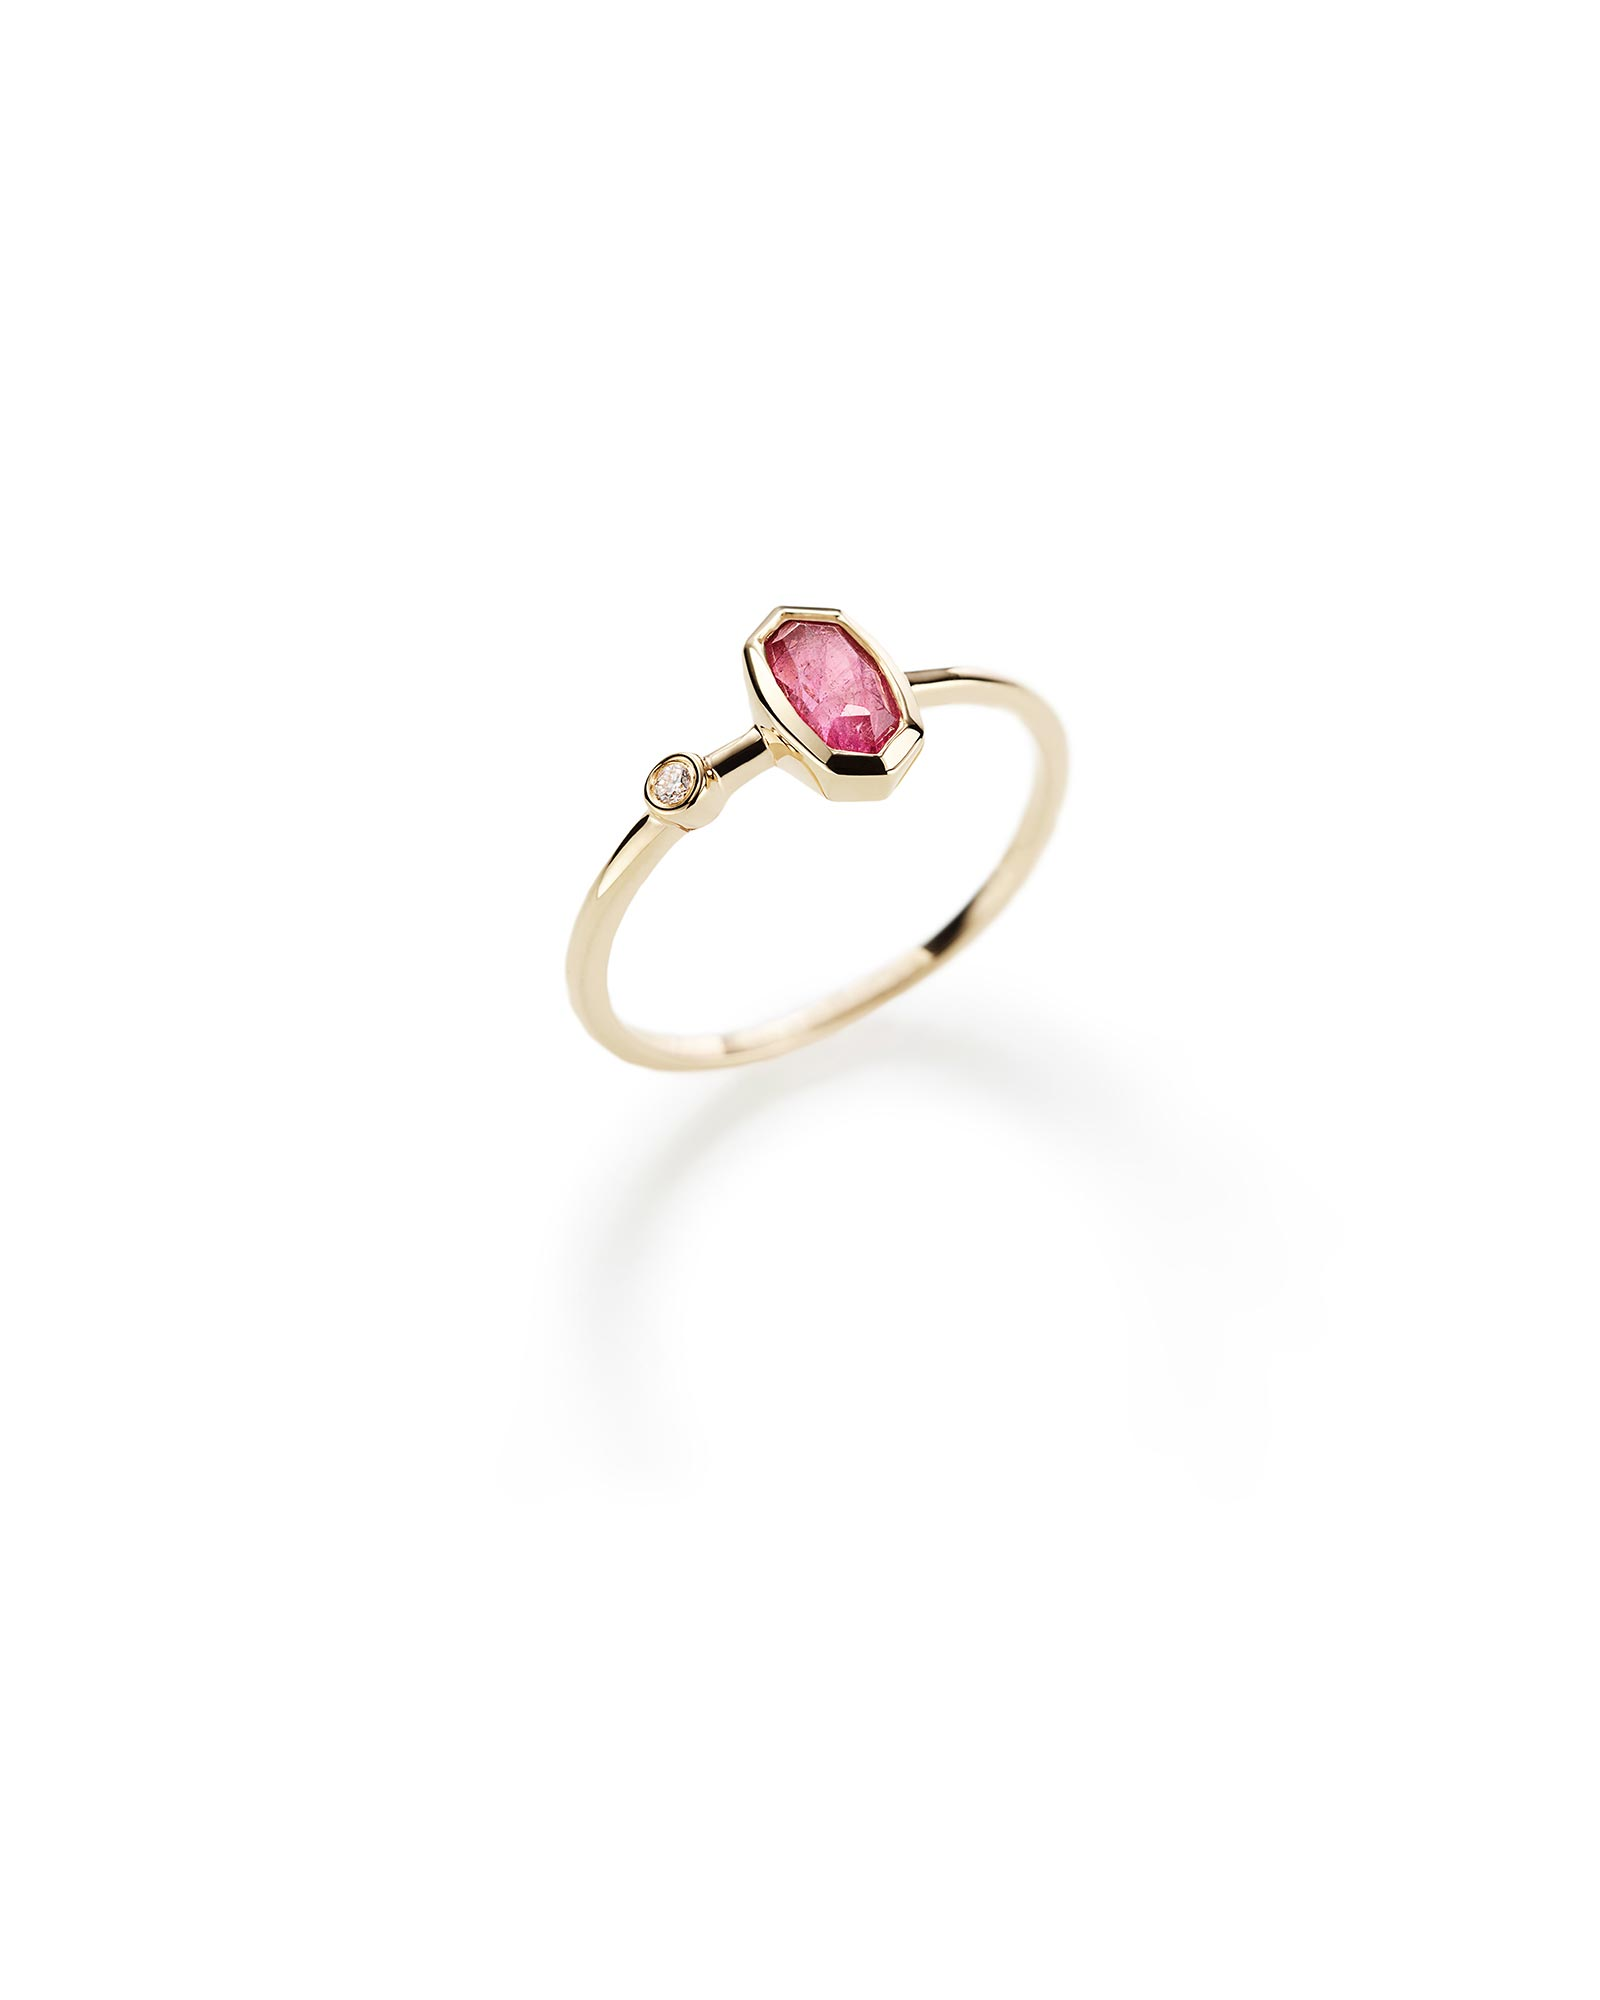 Chastain Ring in 14k Gold